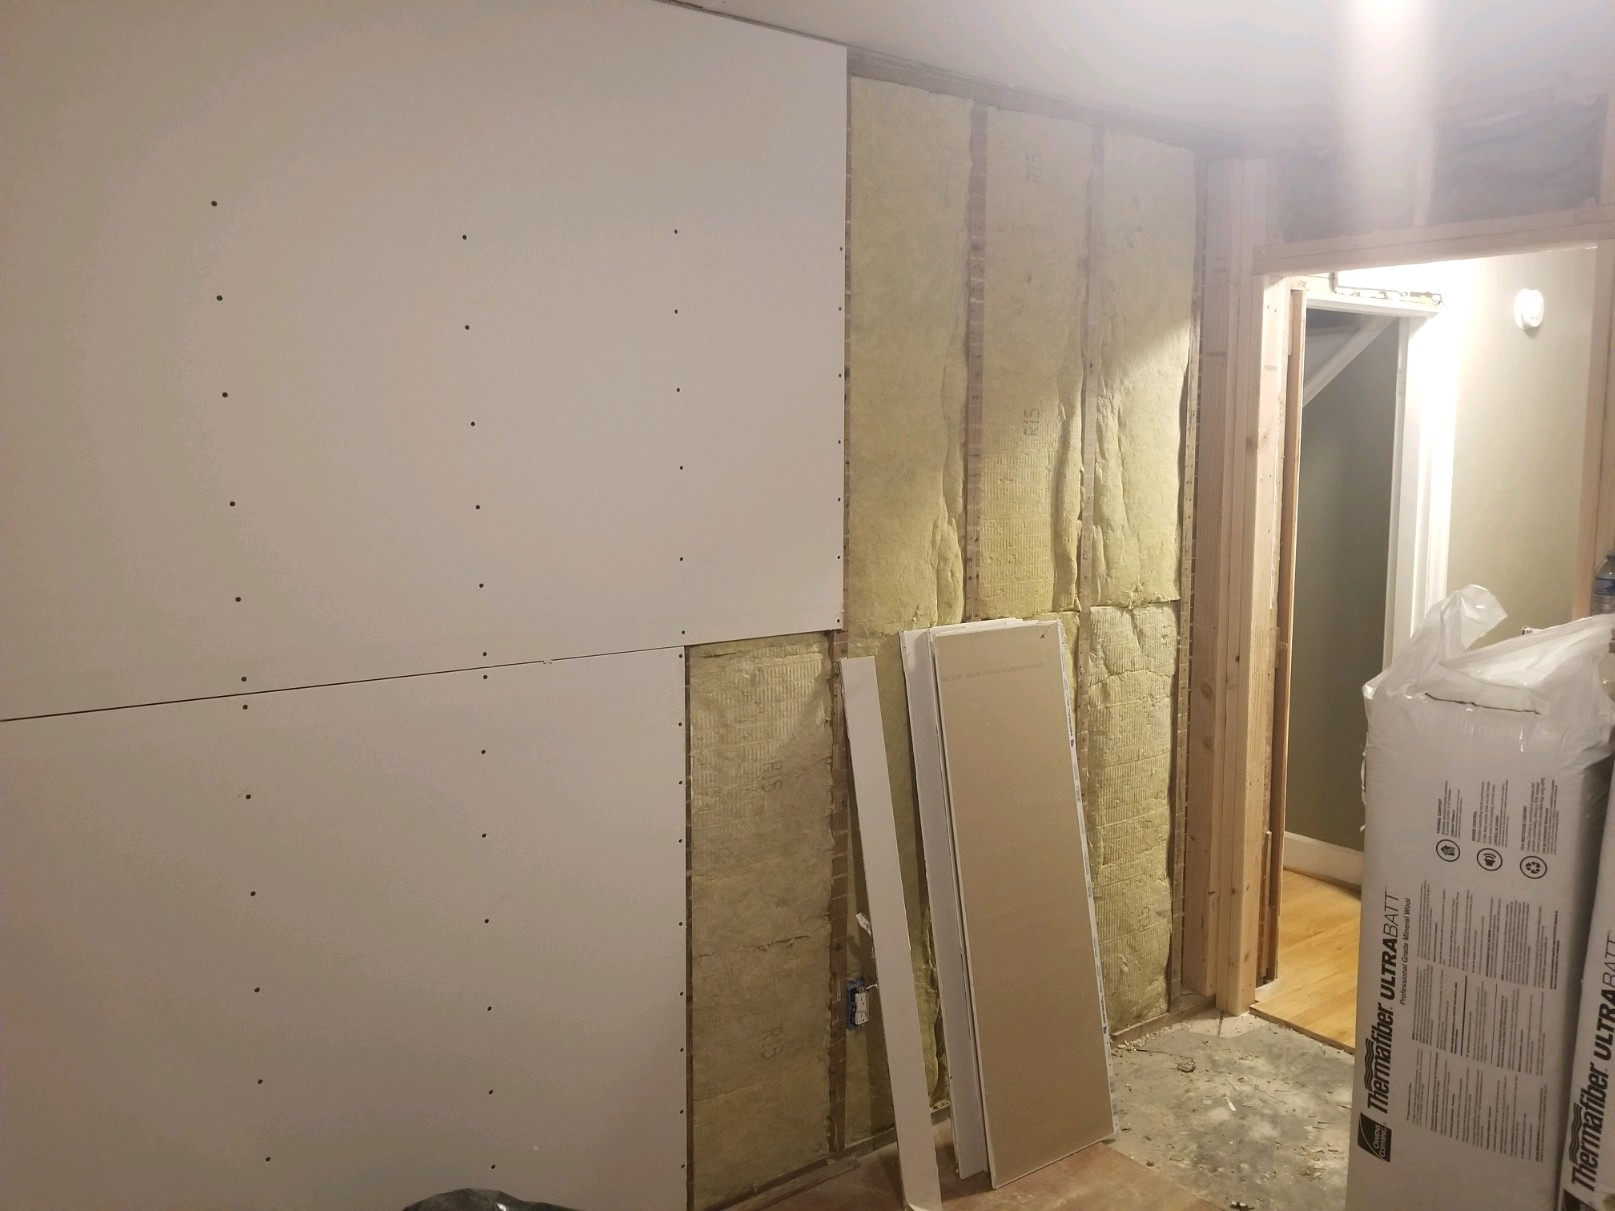 Texture drywall install at business